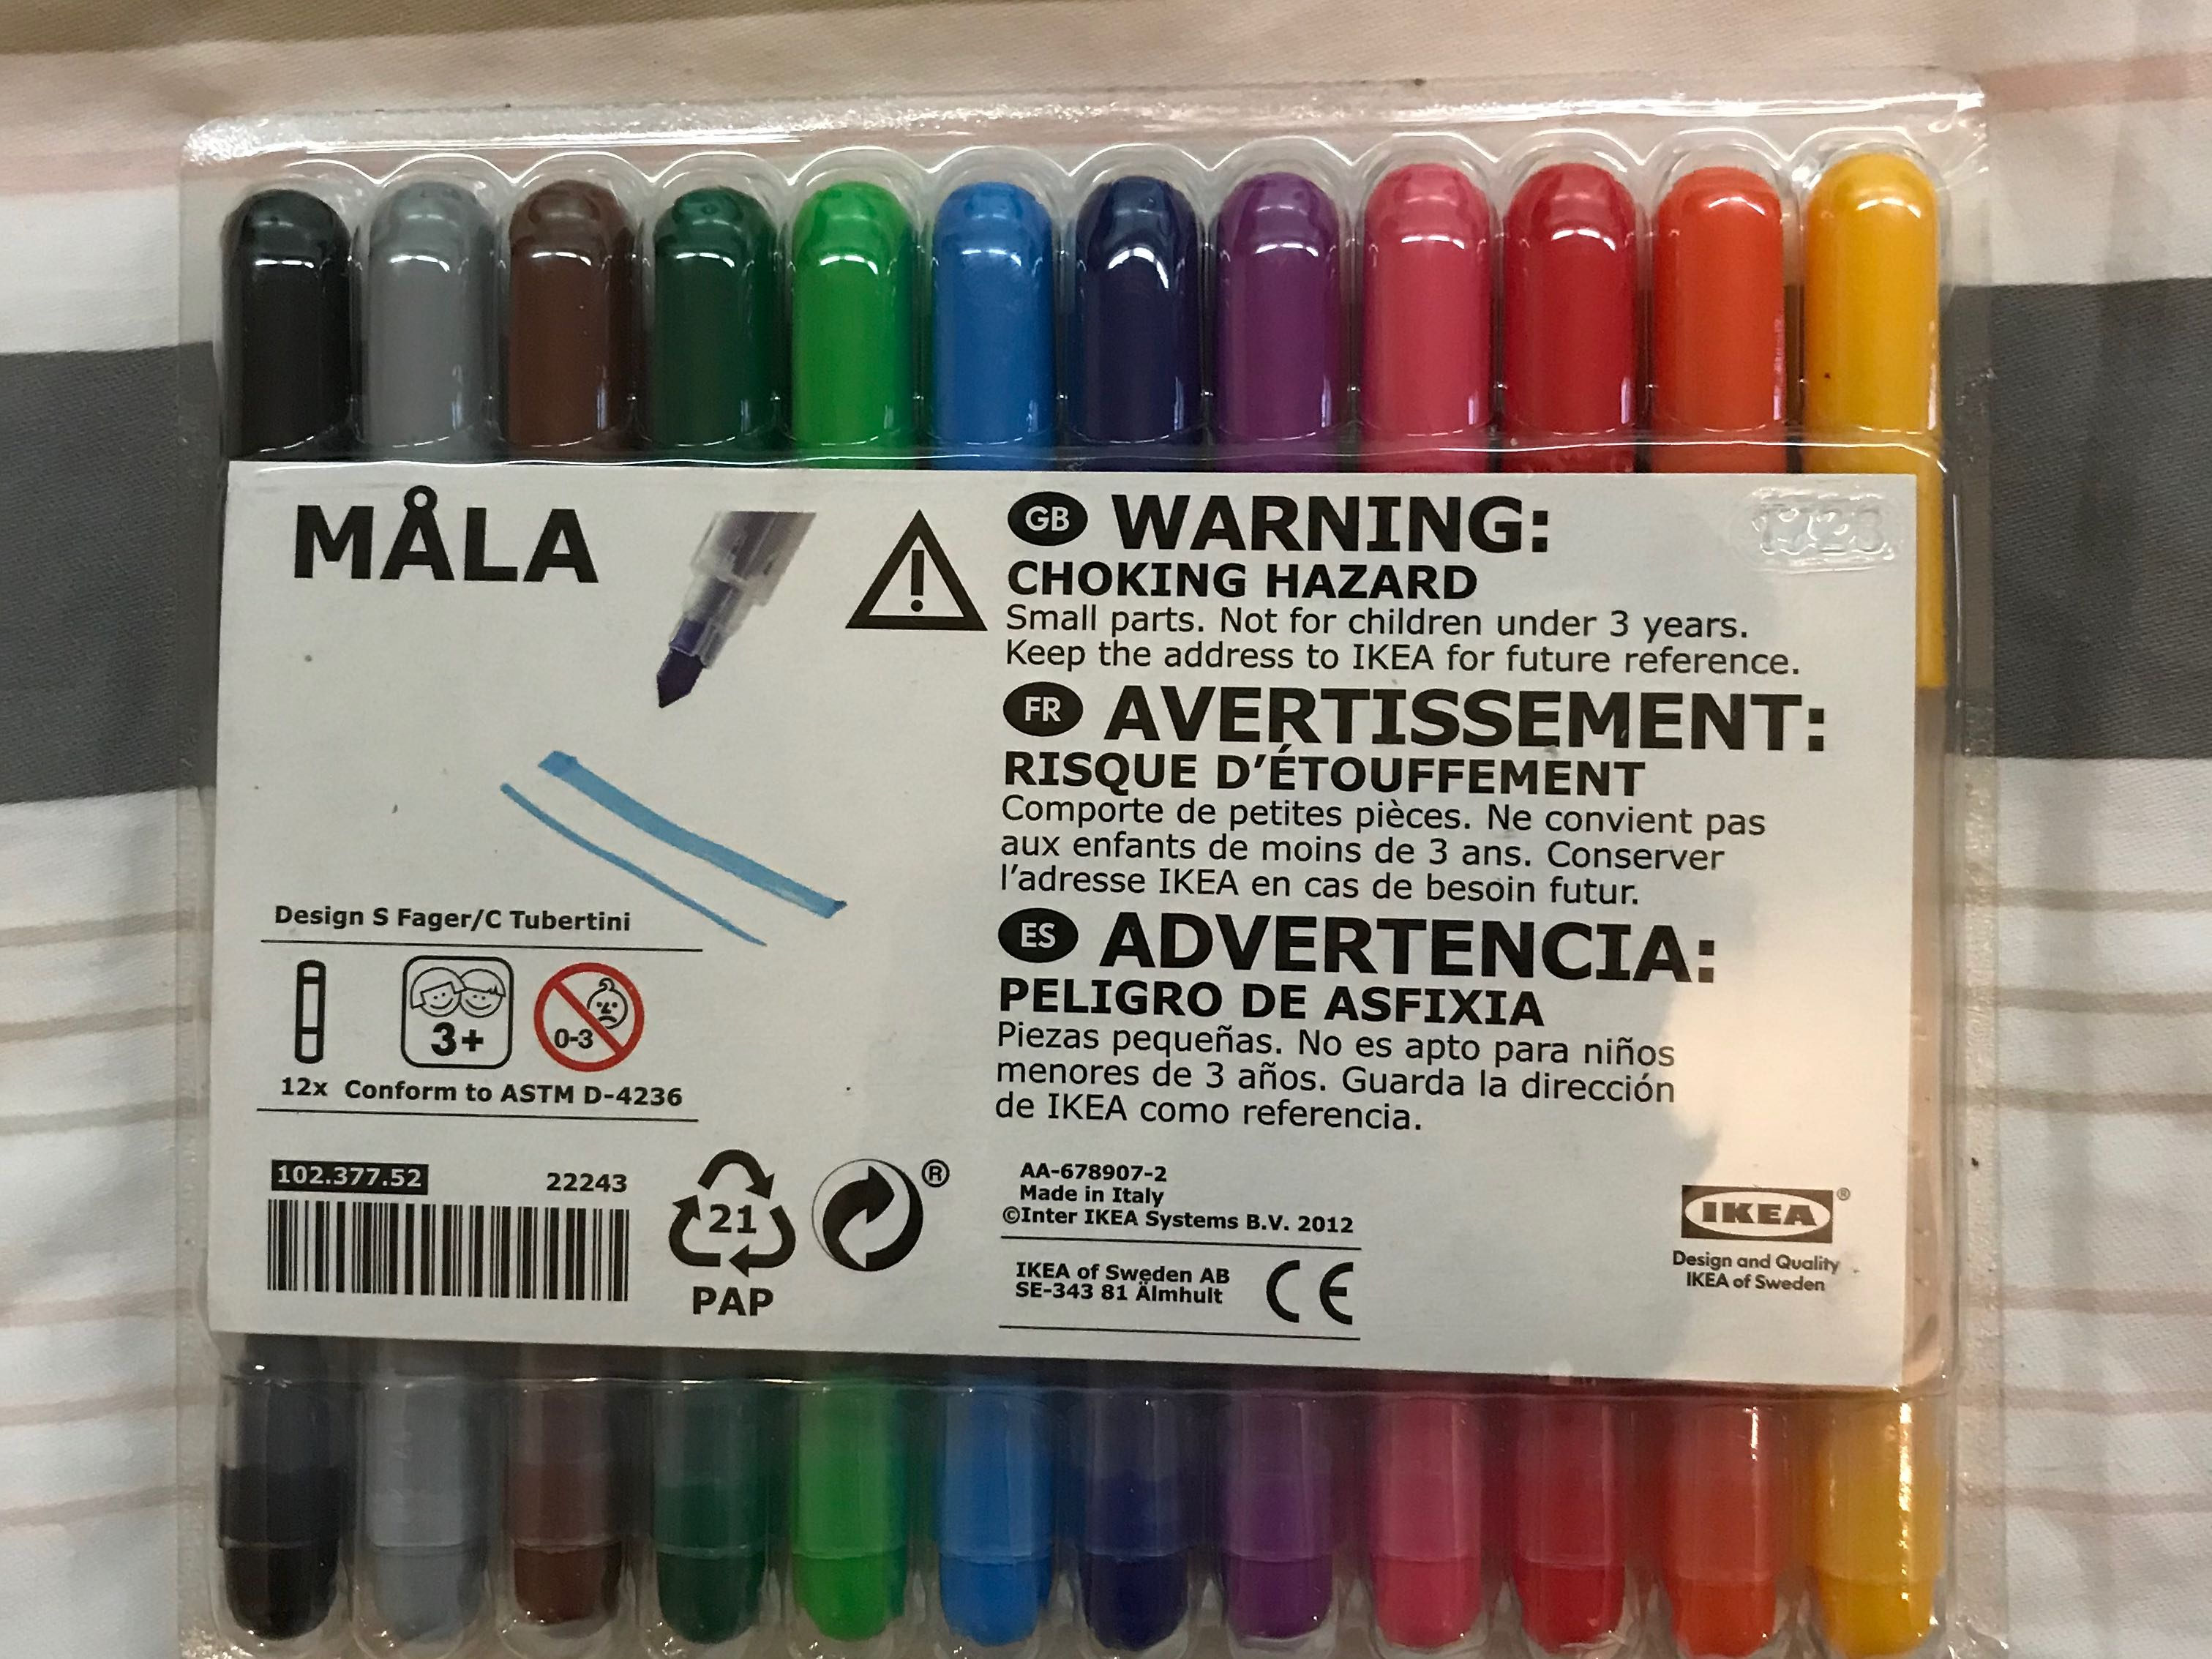 ikea 12pcs marker set